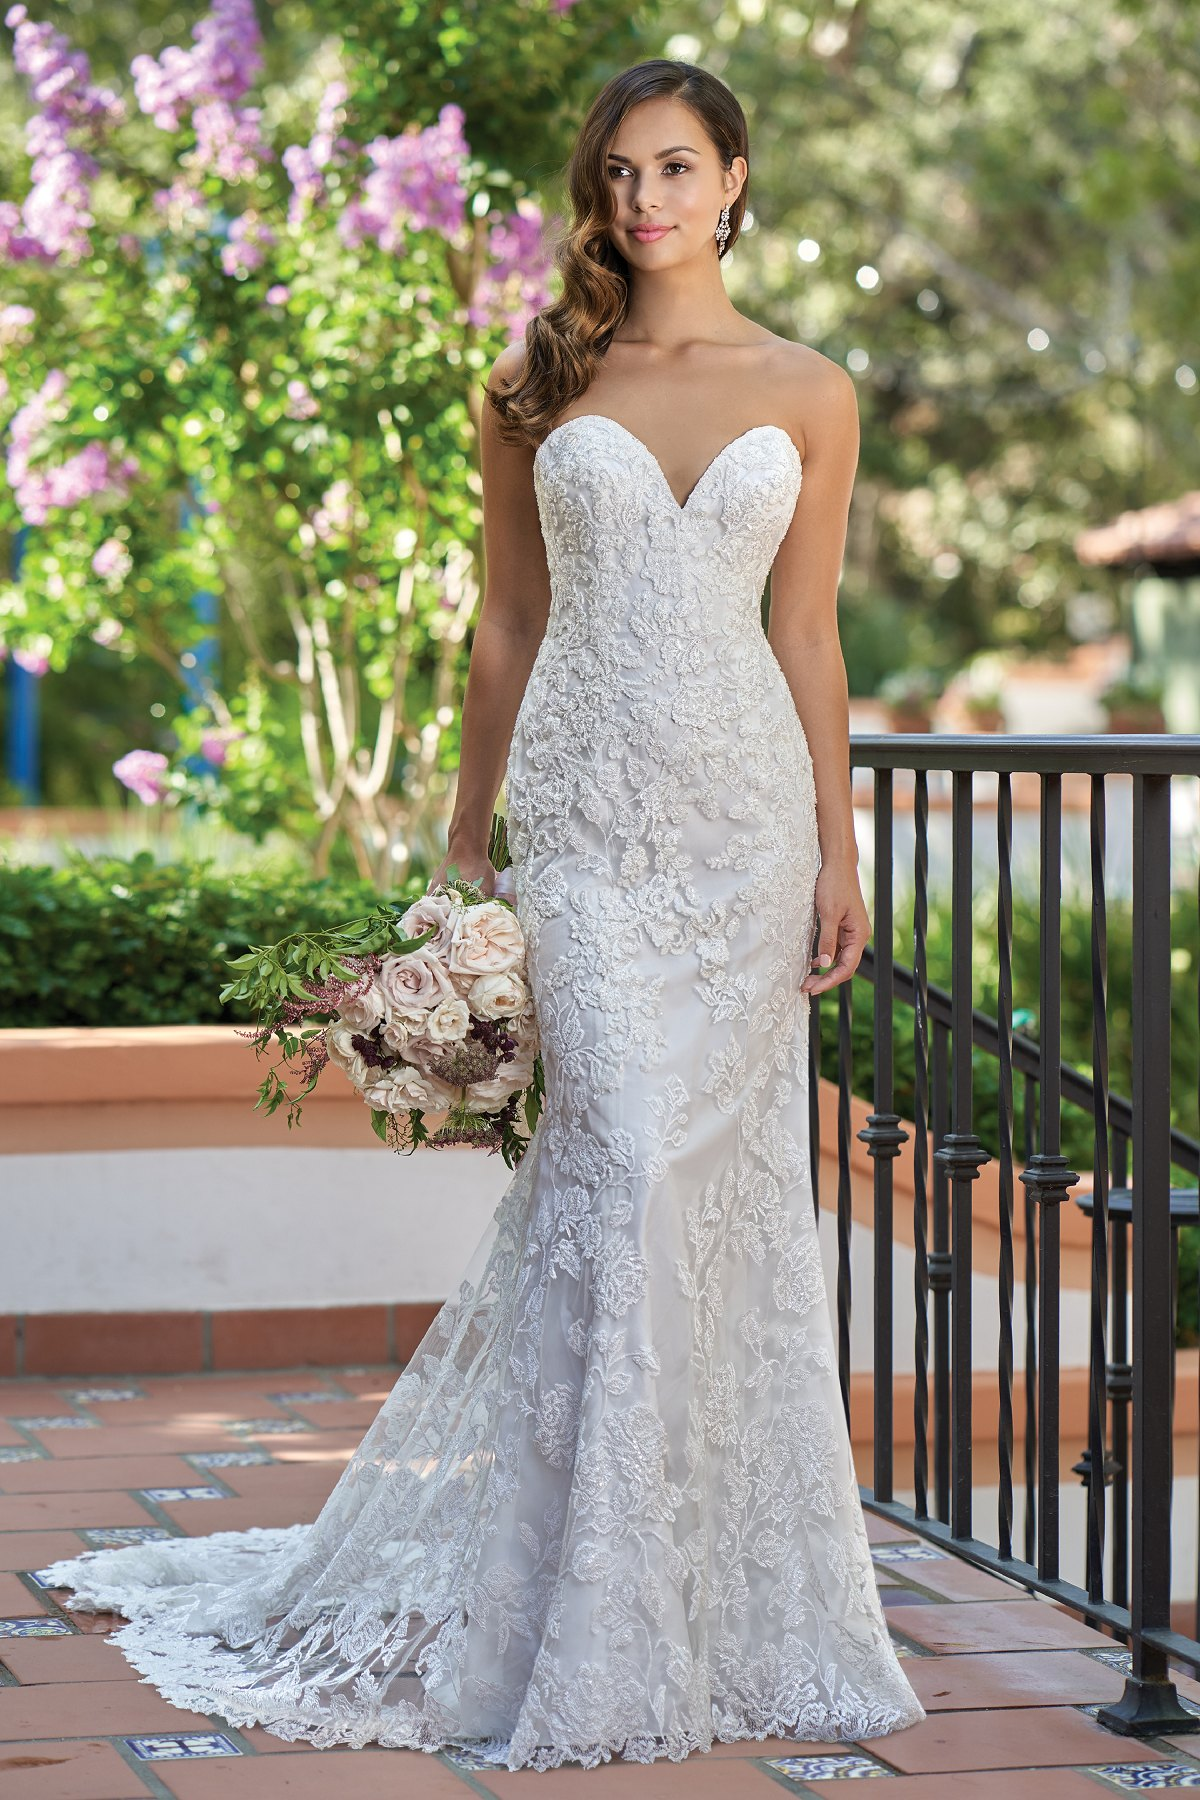 T212003 Romantic Embroidered Lace Strapless Wedding Dress With